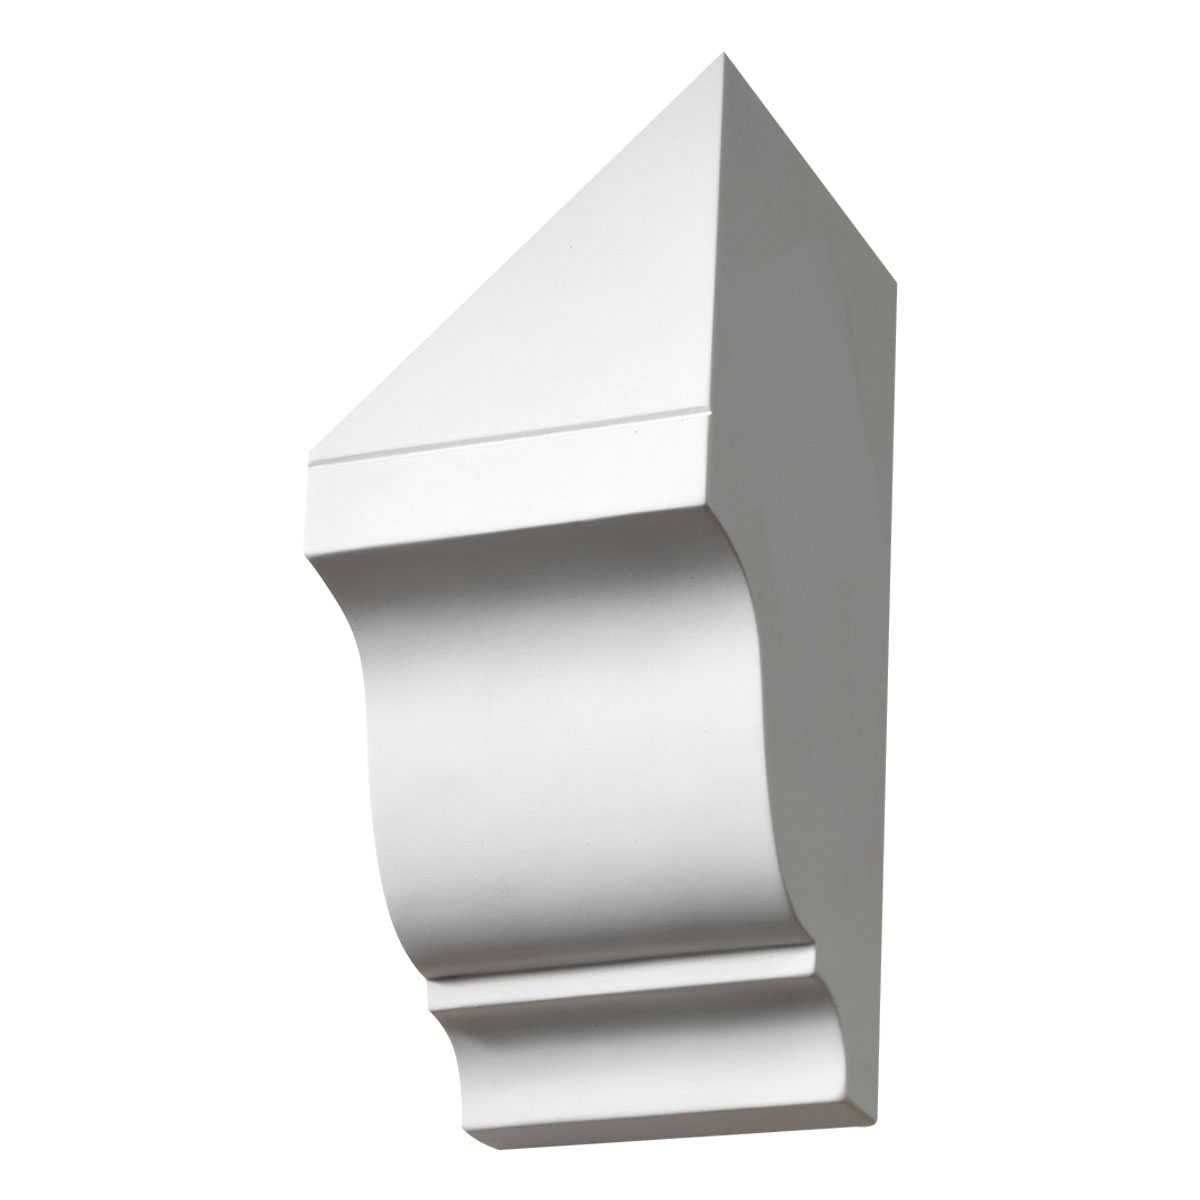 4 3/4'W x 10 15/16'H x 5 1/2'P, Pitch 12/12 Left Pitch Corbel Dentil Block